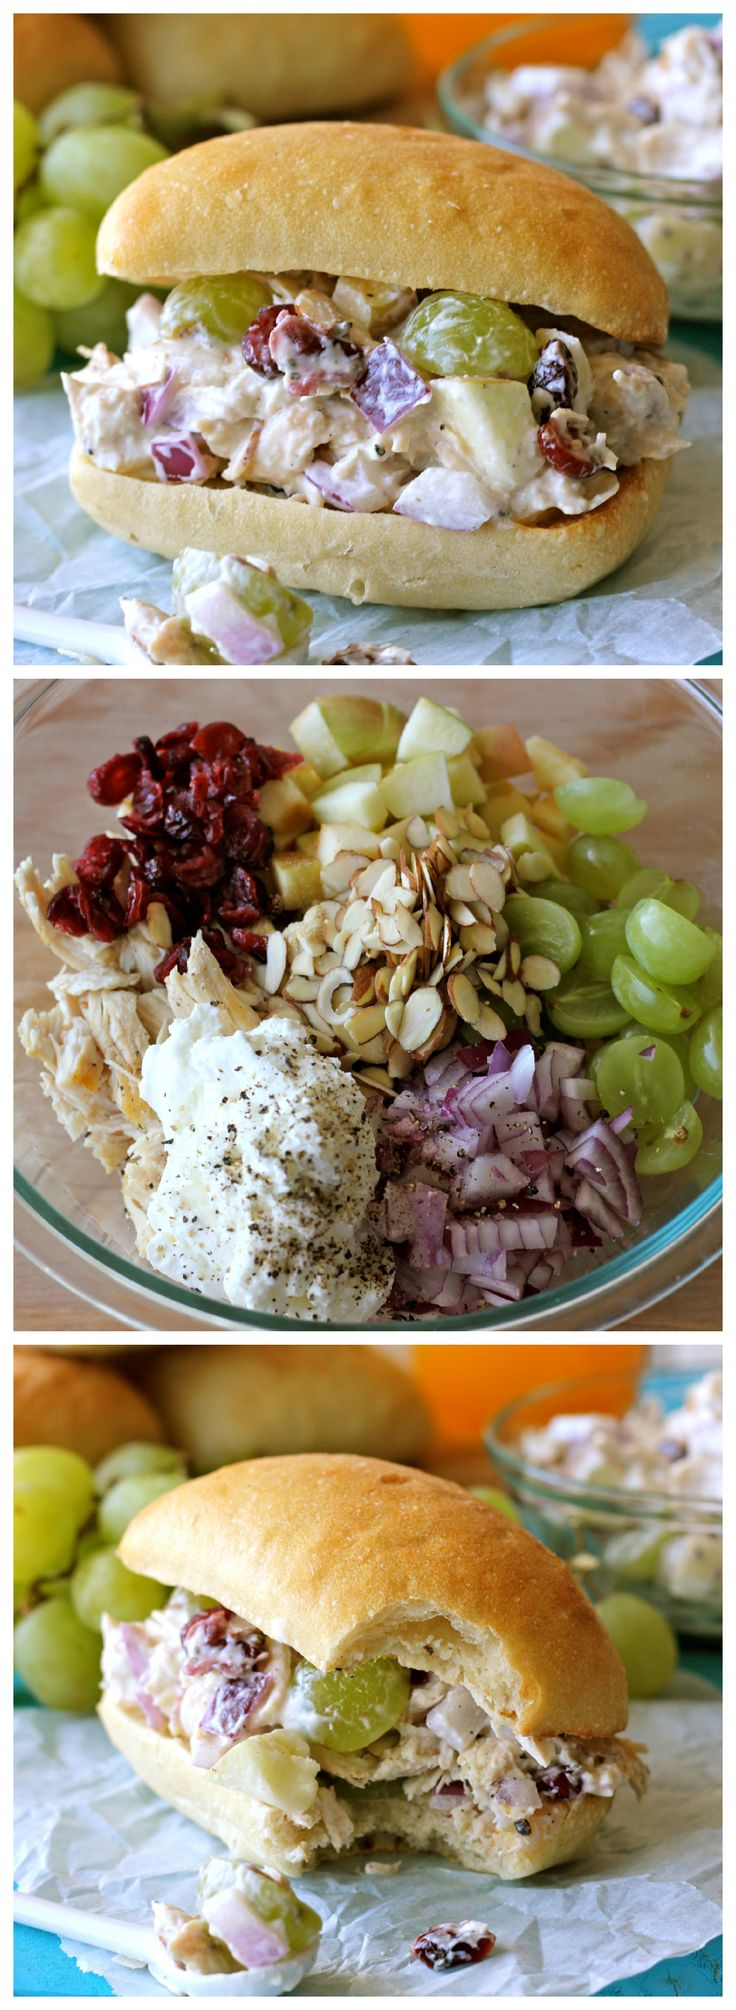 Greek Yogurt Chicken Salad Sandwich - From the plump grapes and fresh apples to the sweet cranberries, this lightened up sandwich won't even taste healthy!